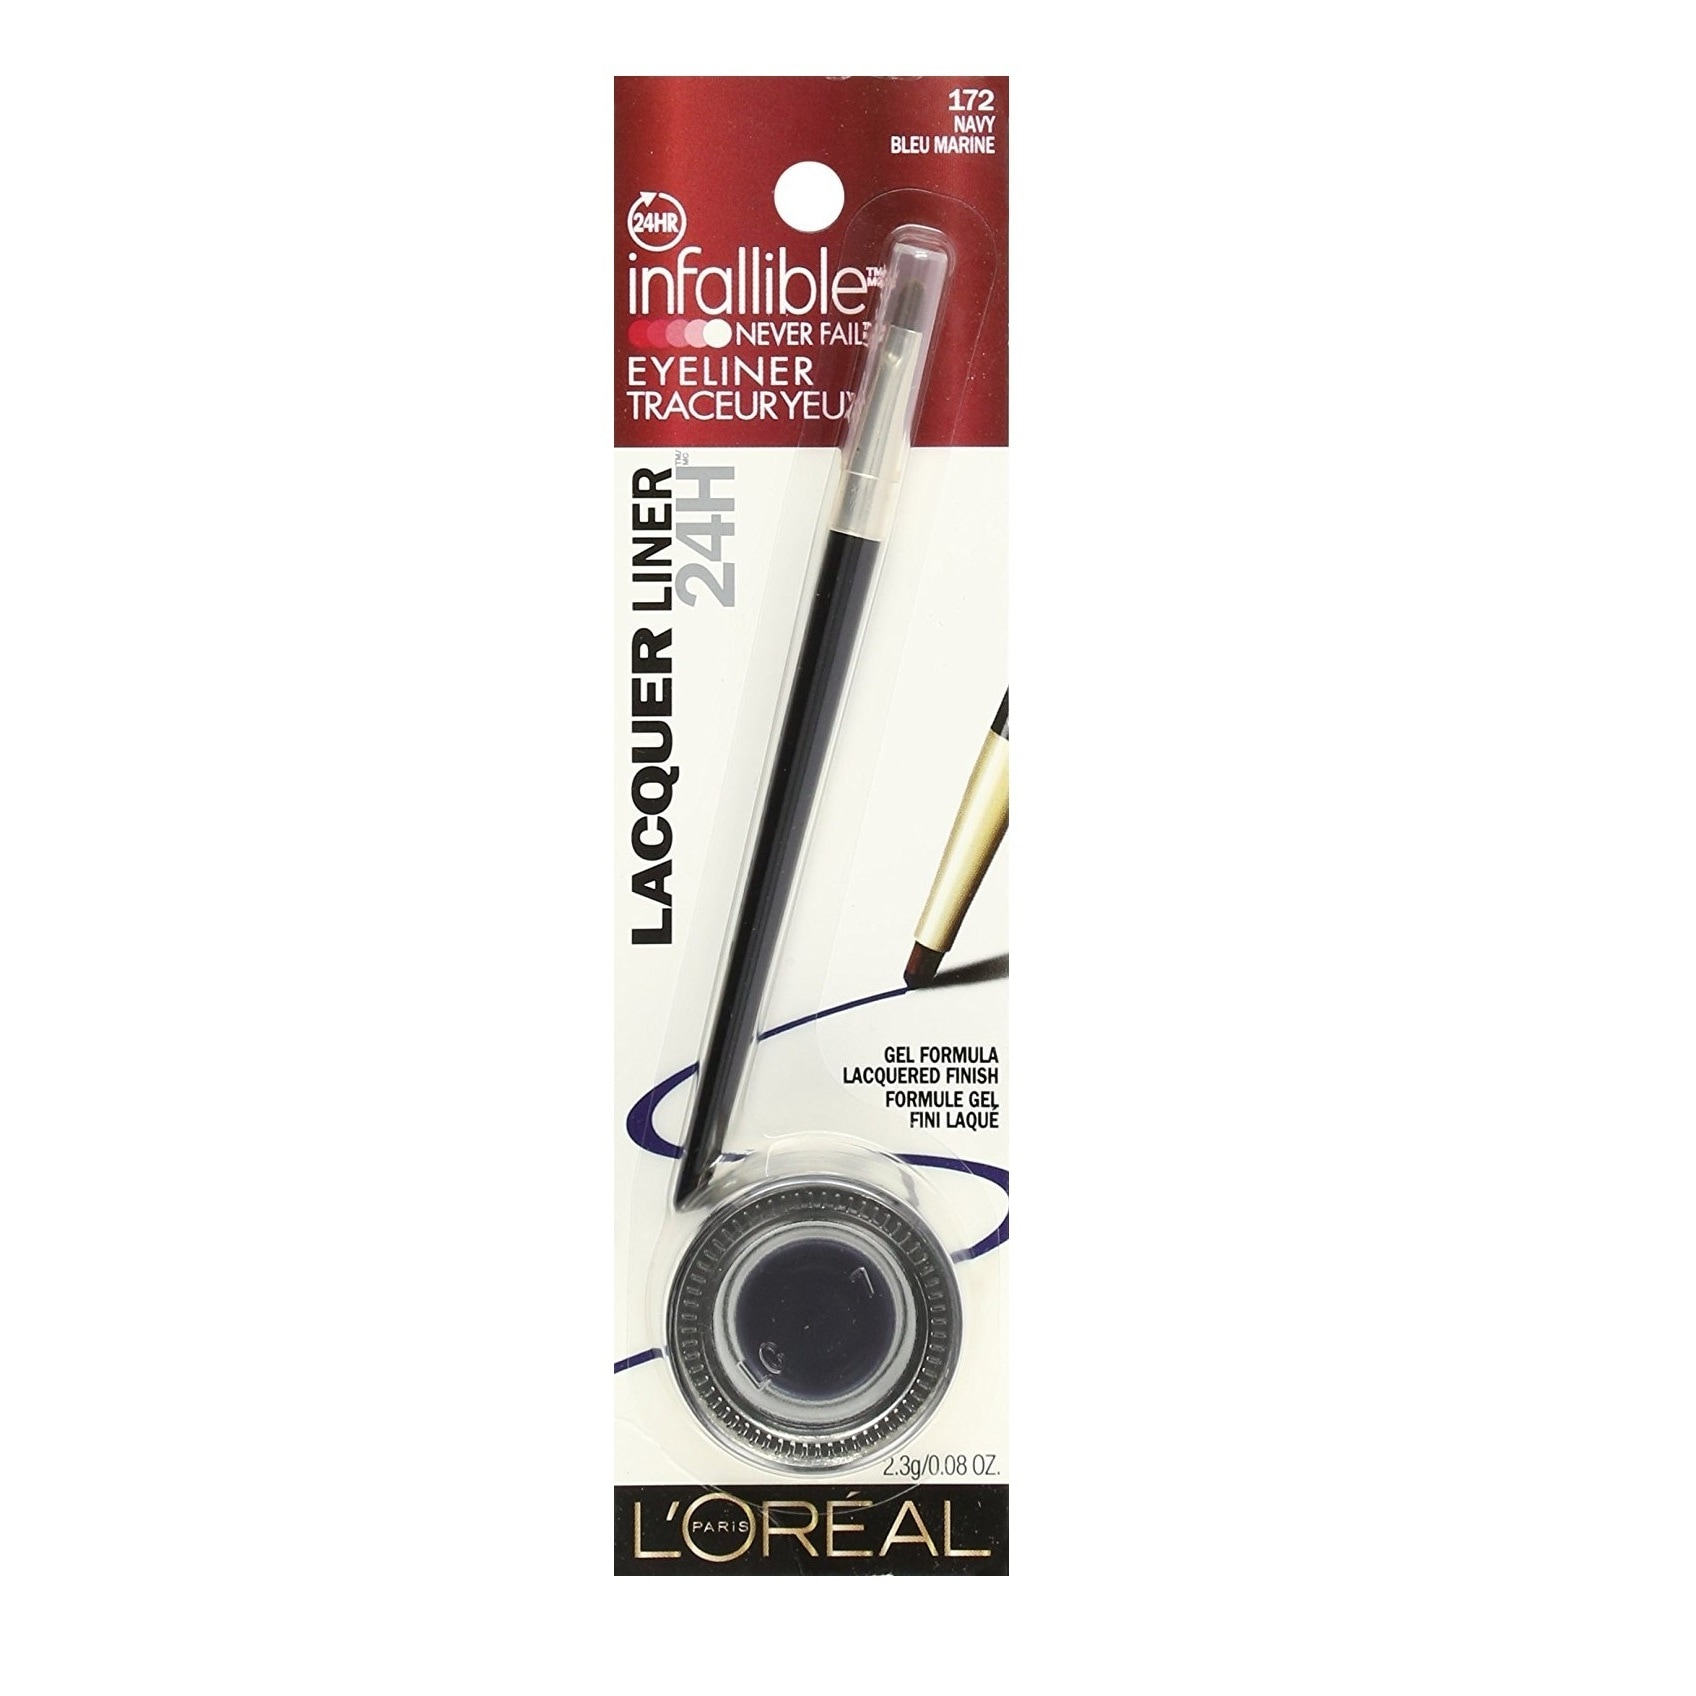 L'Oreal Infallible Never Fail Gel Eyeliner Lacquer Liner ...